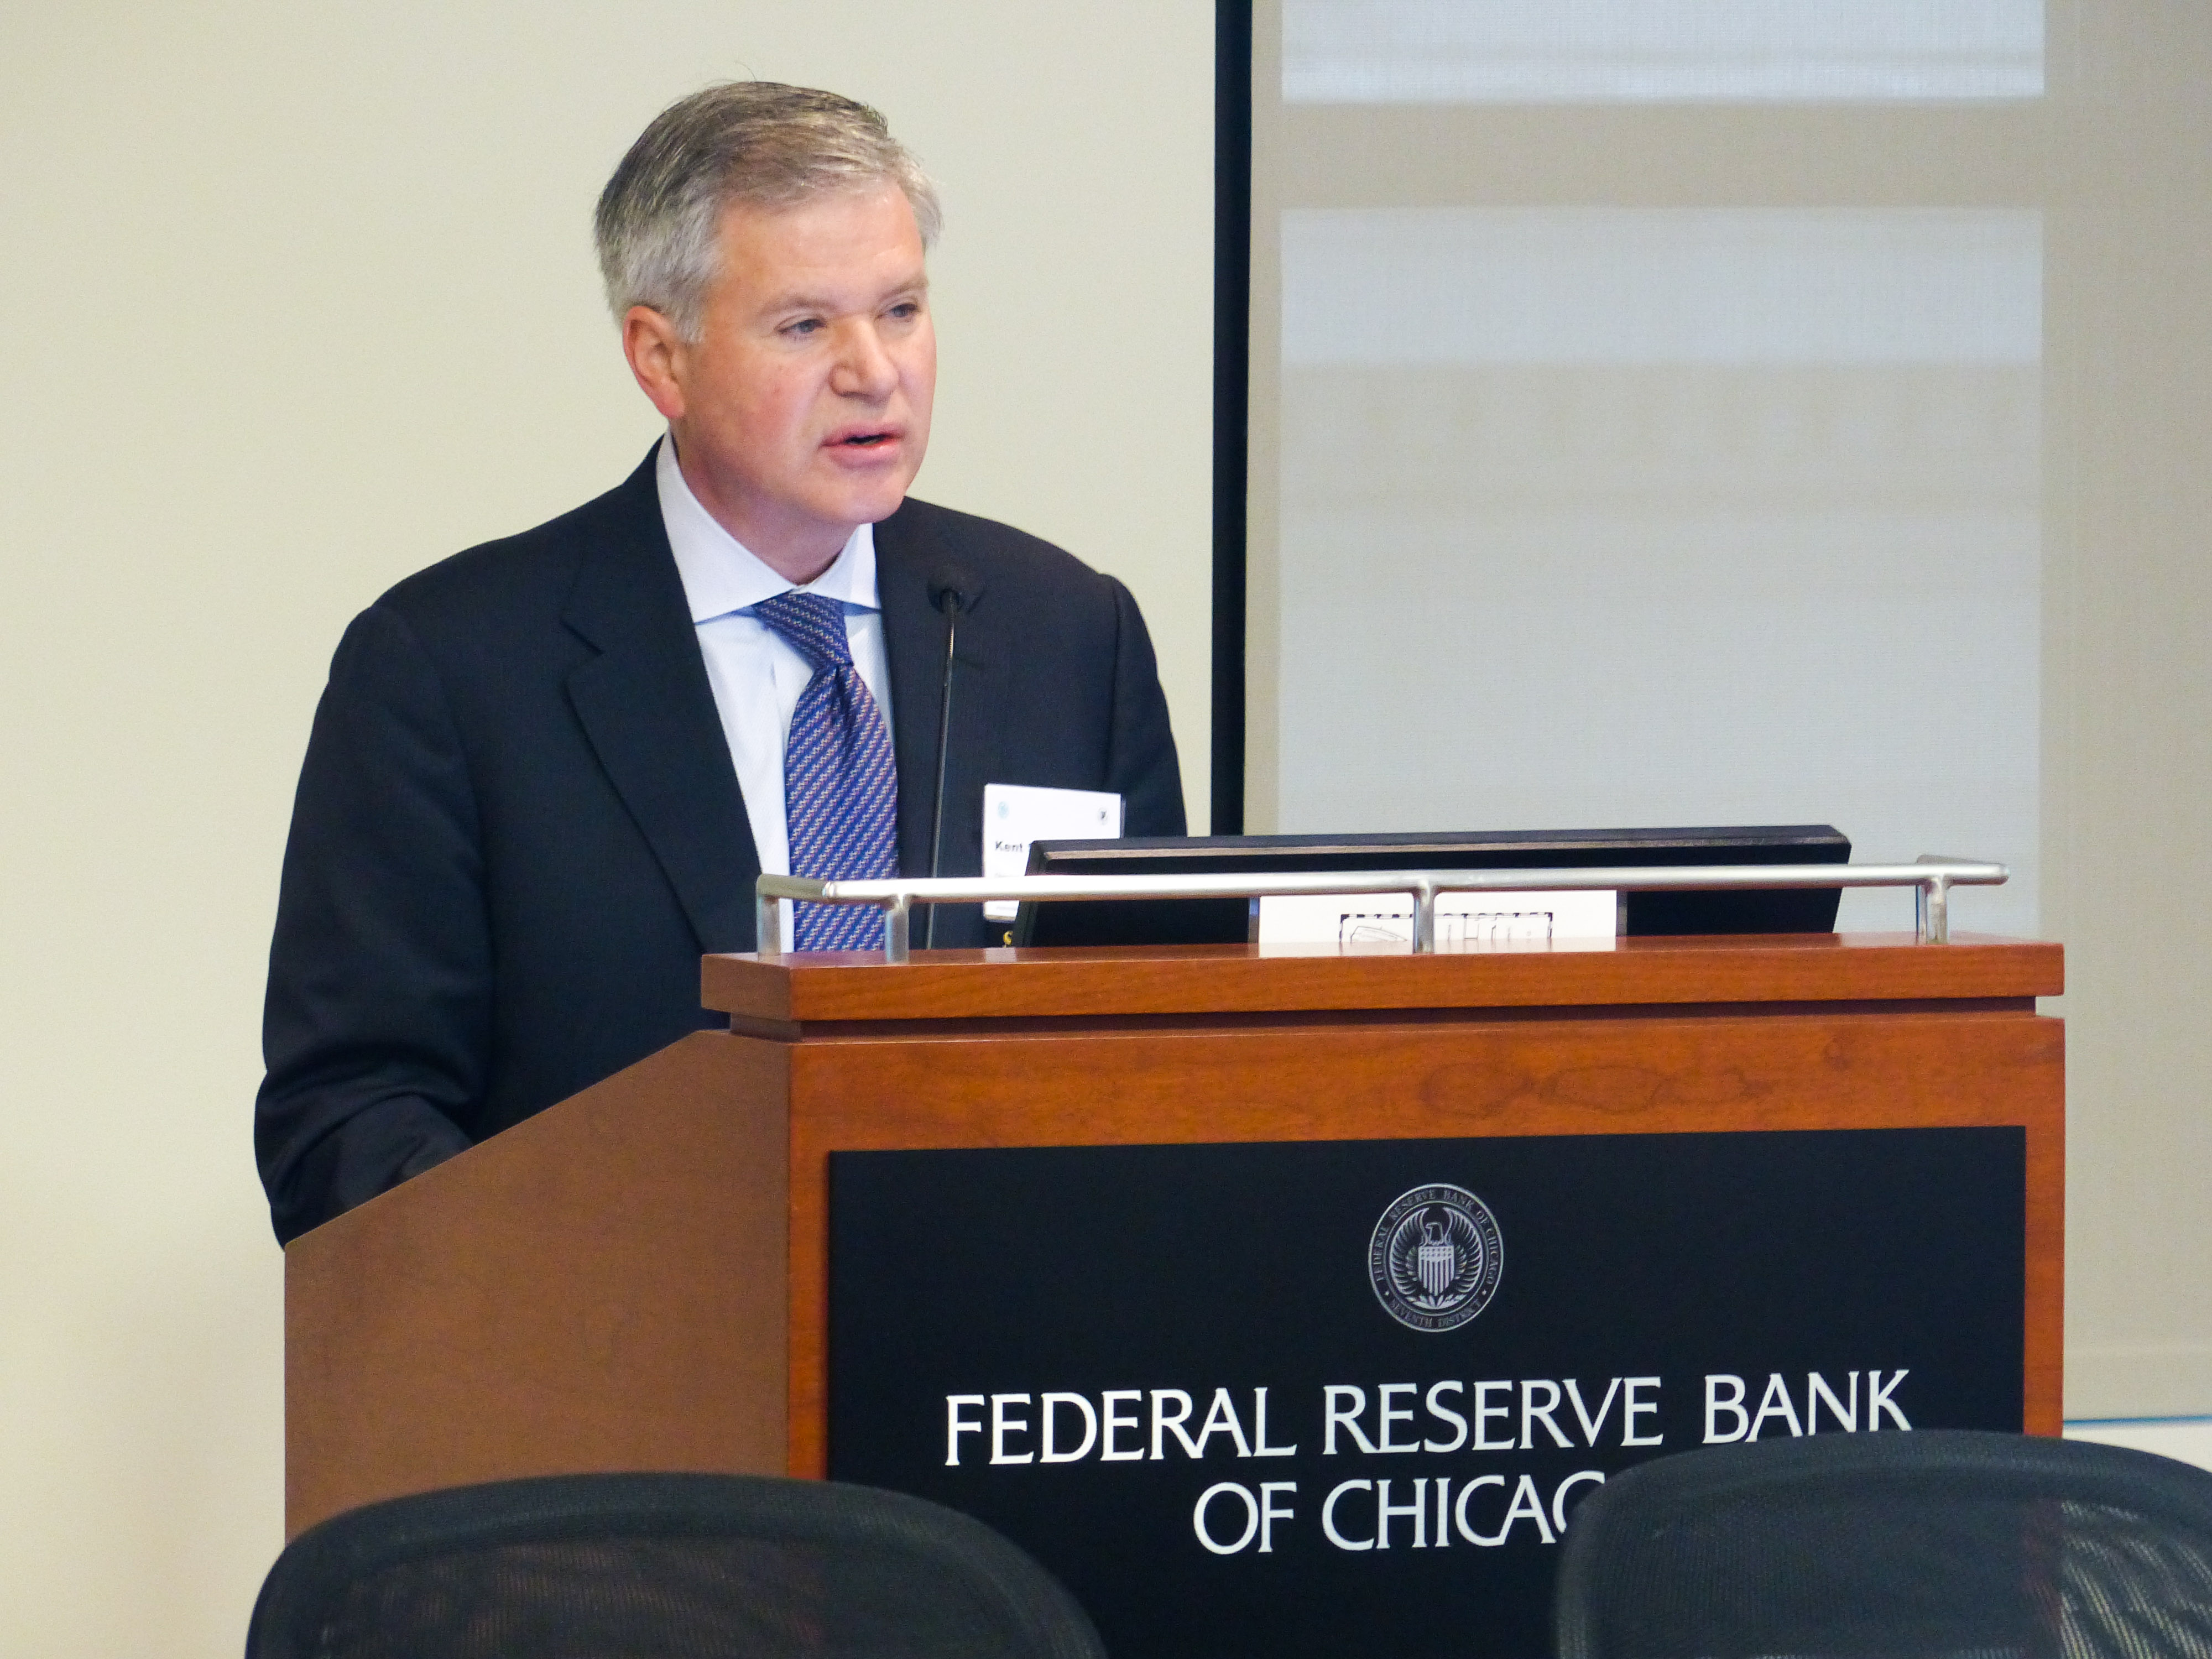 Kent Swanson, Federal Reserve Bank of Chicago, Civic Federation